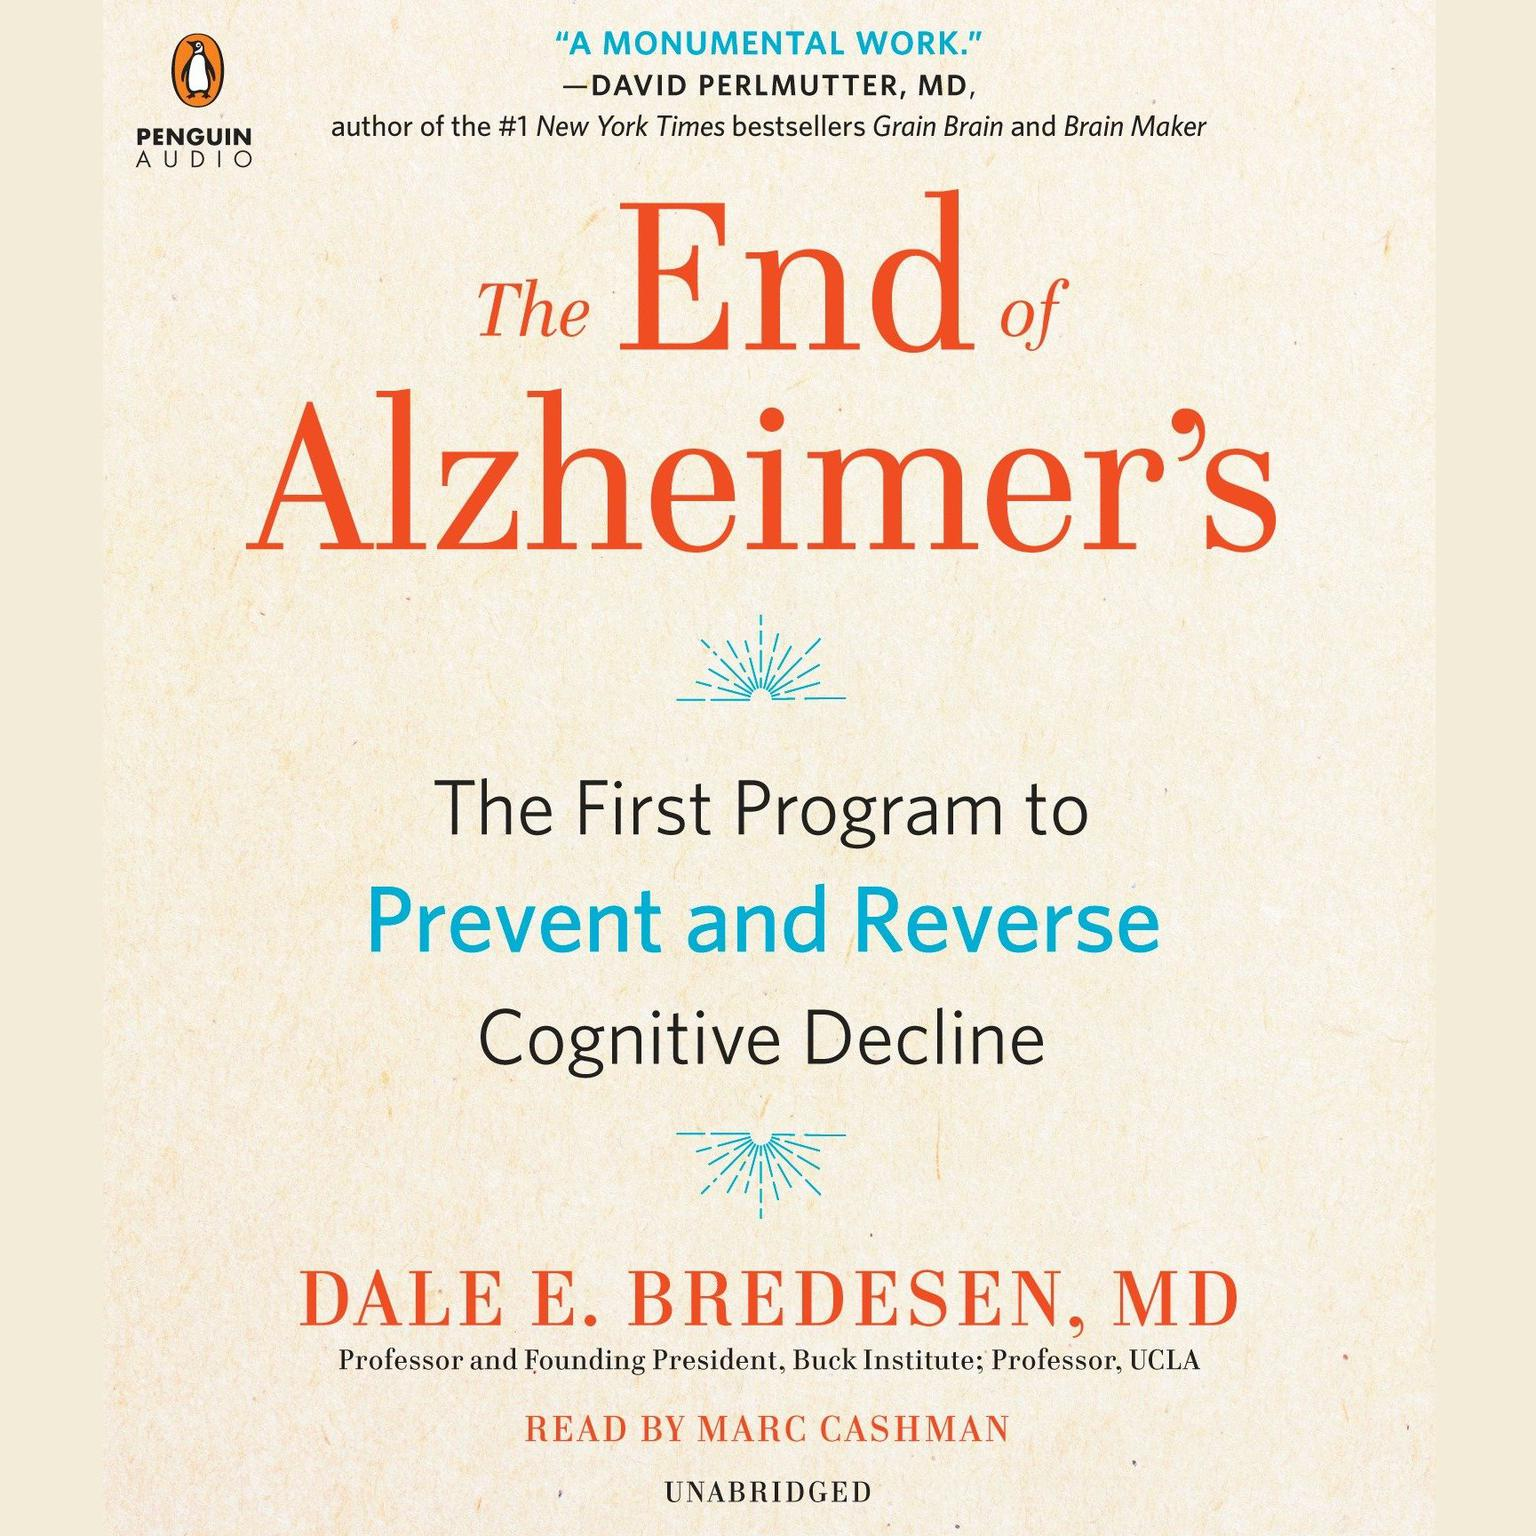 The End of Alzheimer's: The First Program to Prevent and Reverse Cognitive Decline Audiobook, by Dale Bredesen